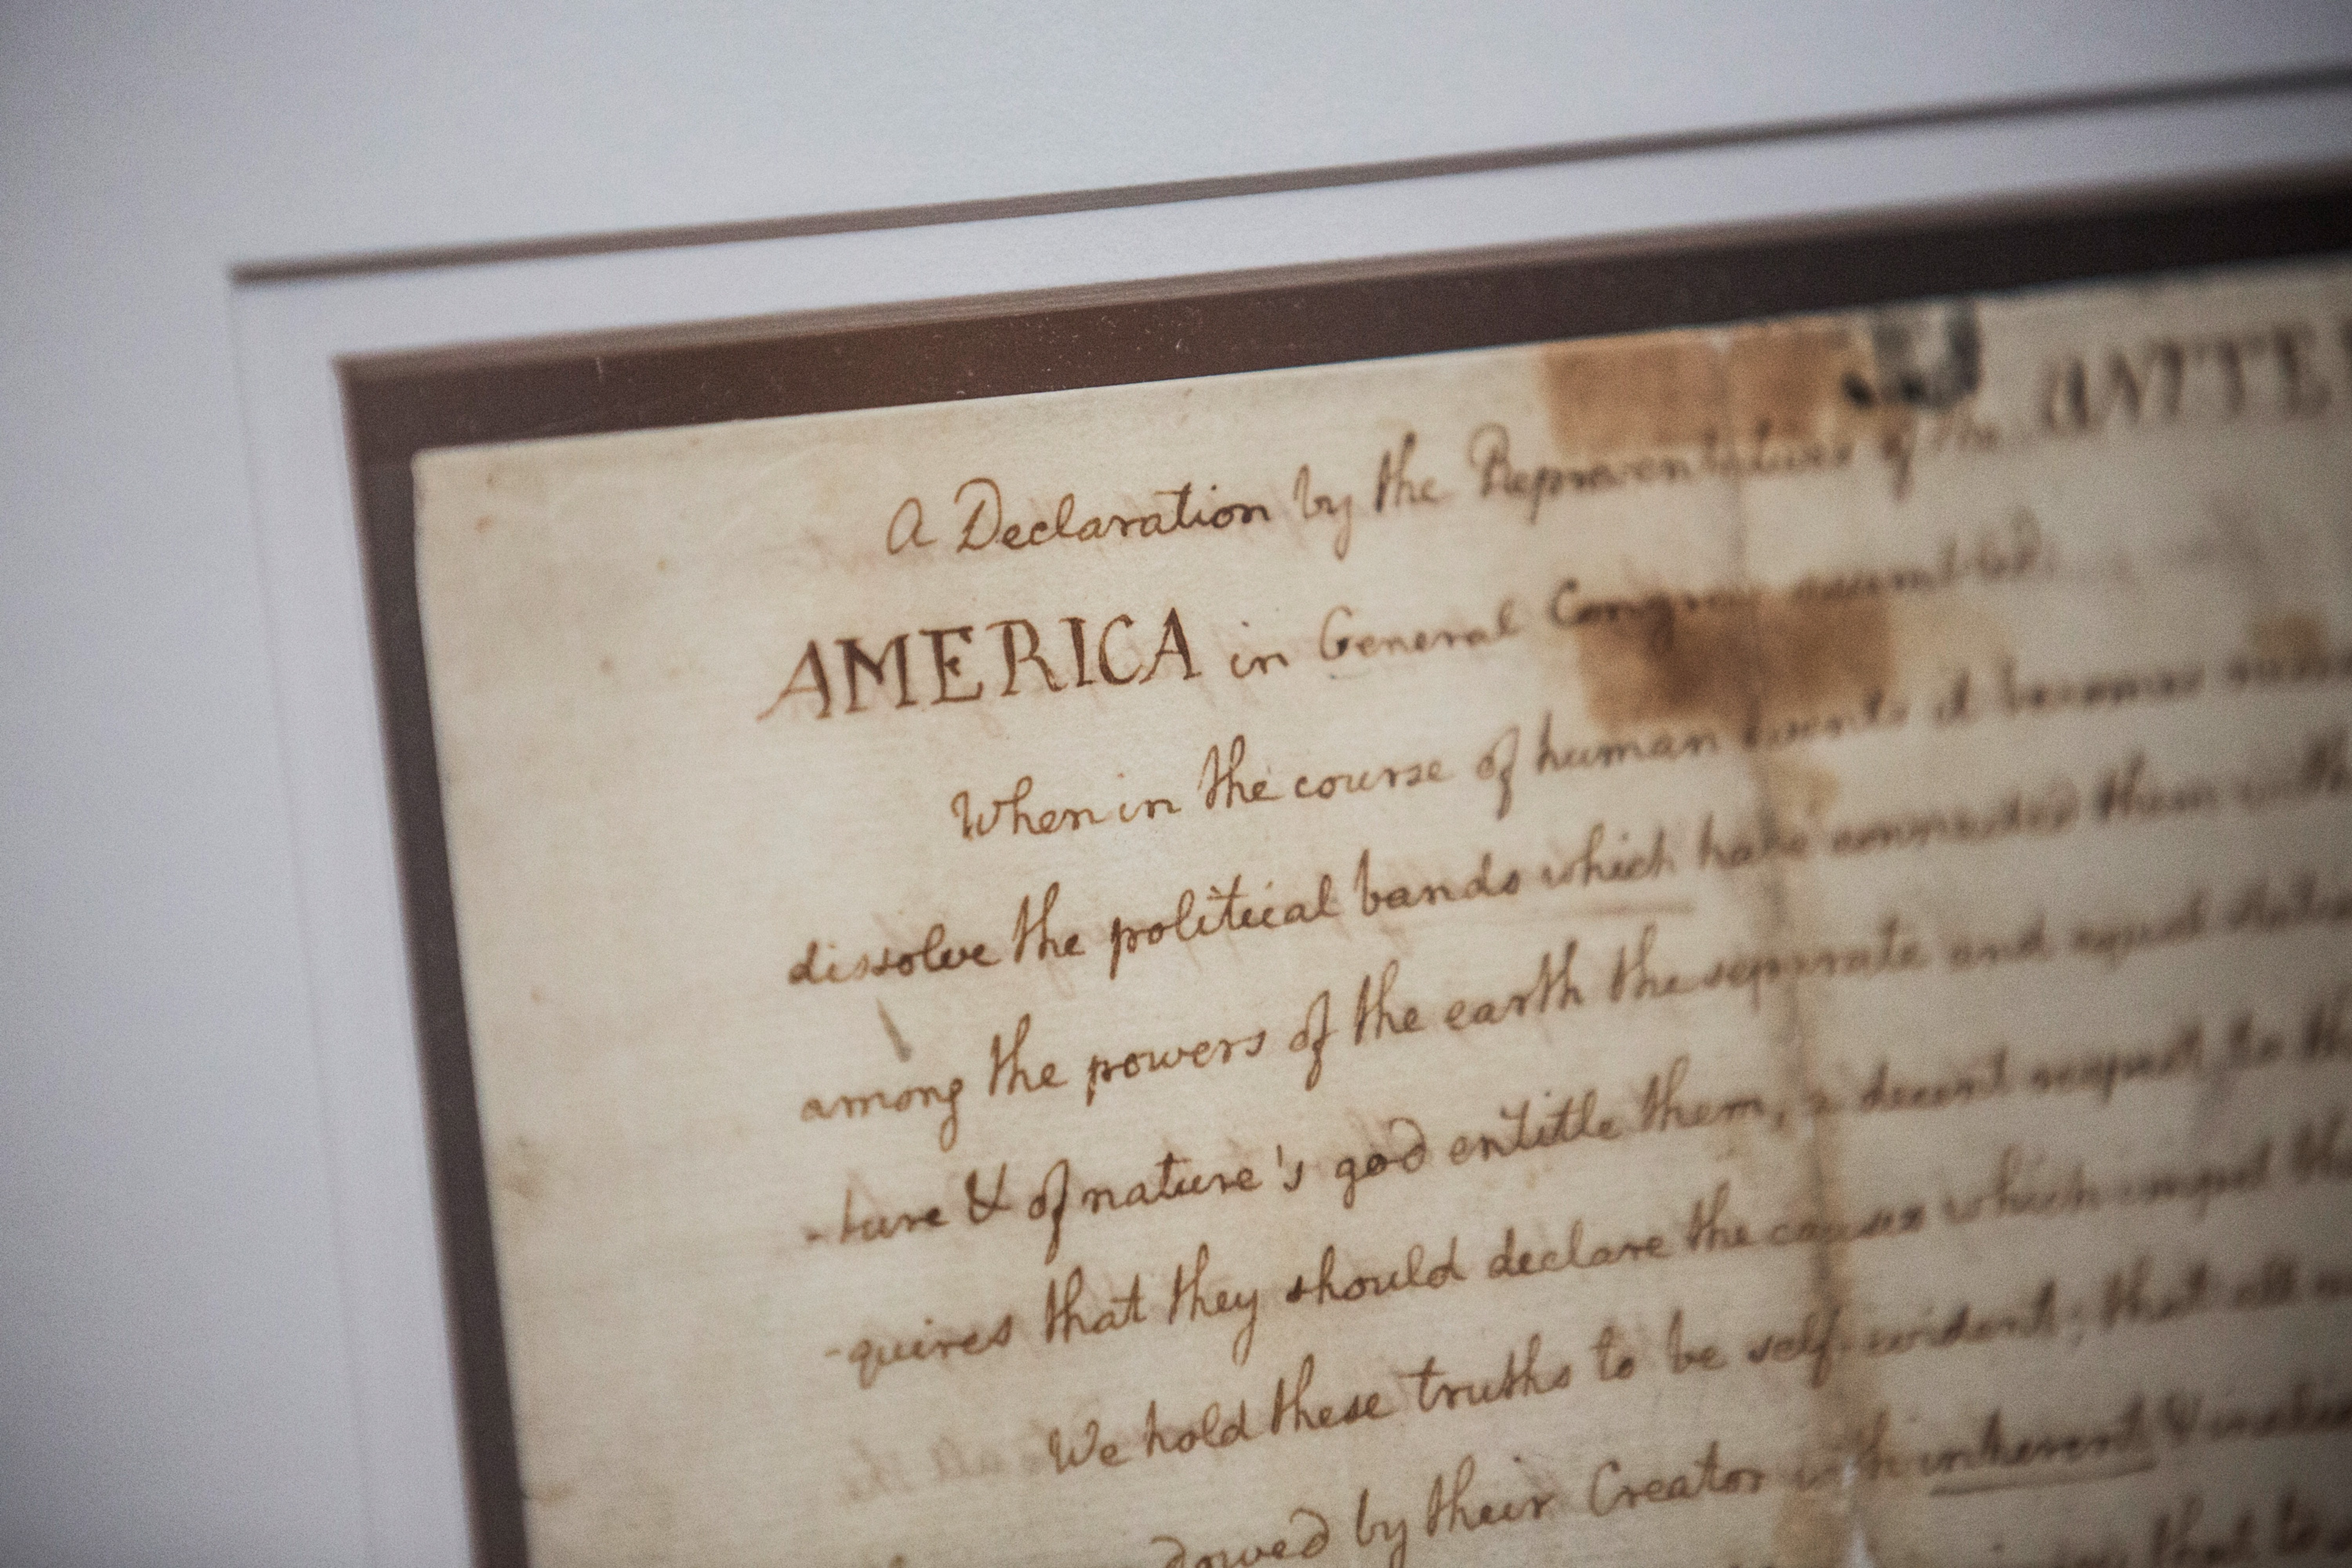 Jefferson's rough draft of the Declaration, currently on display at the New York Public Library